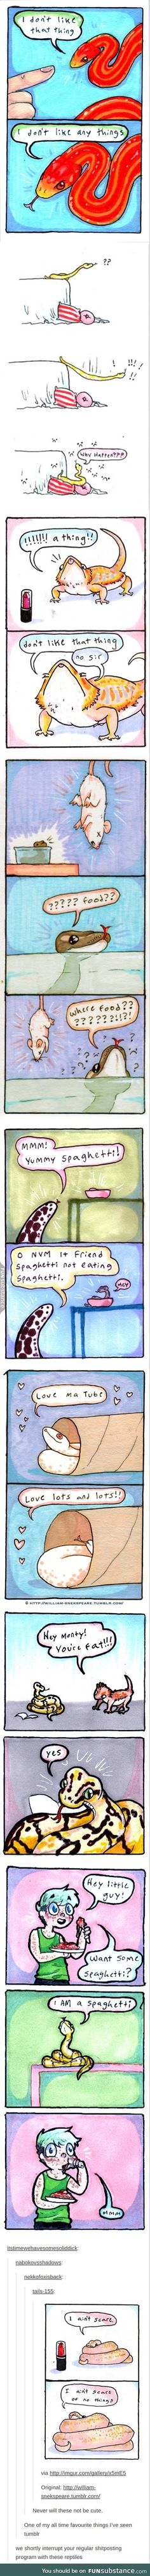 cute reptile comics